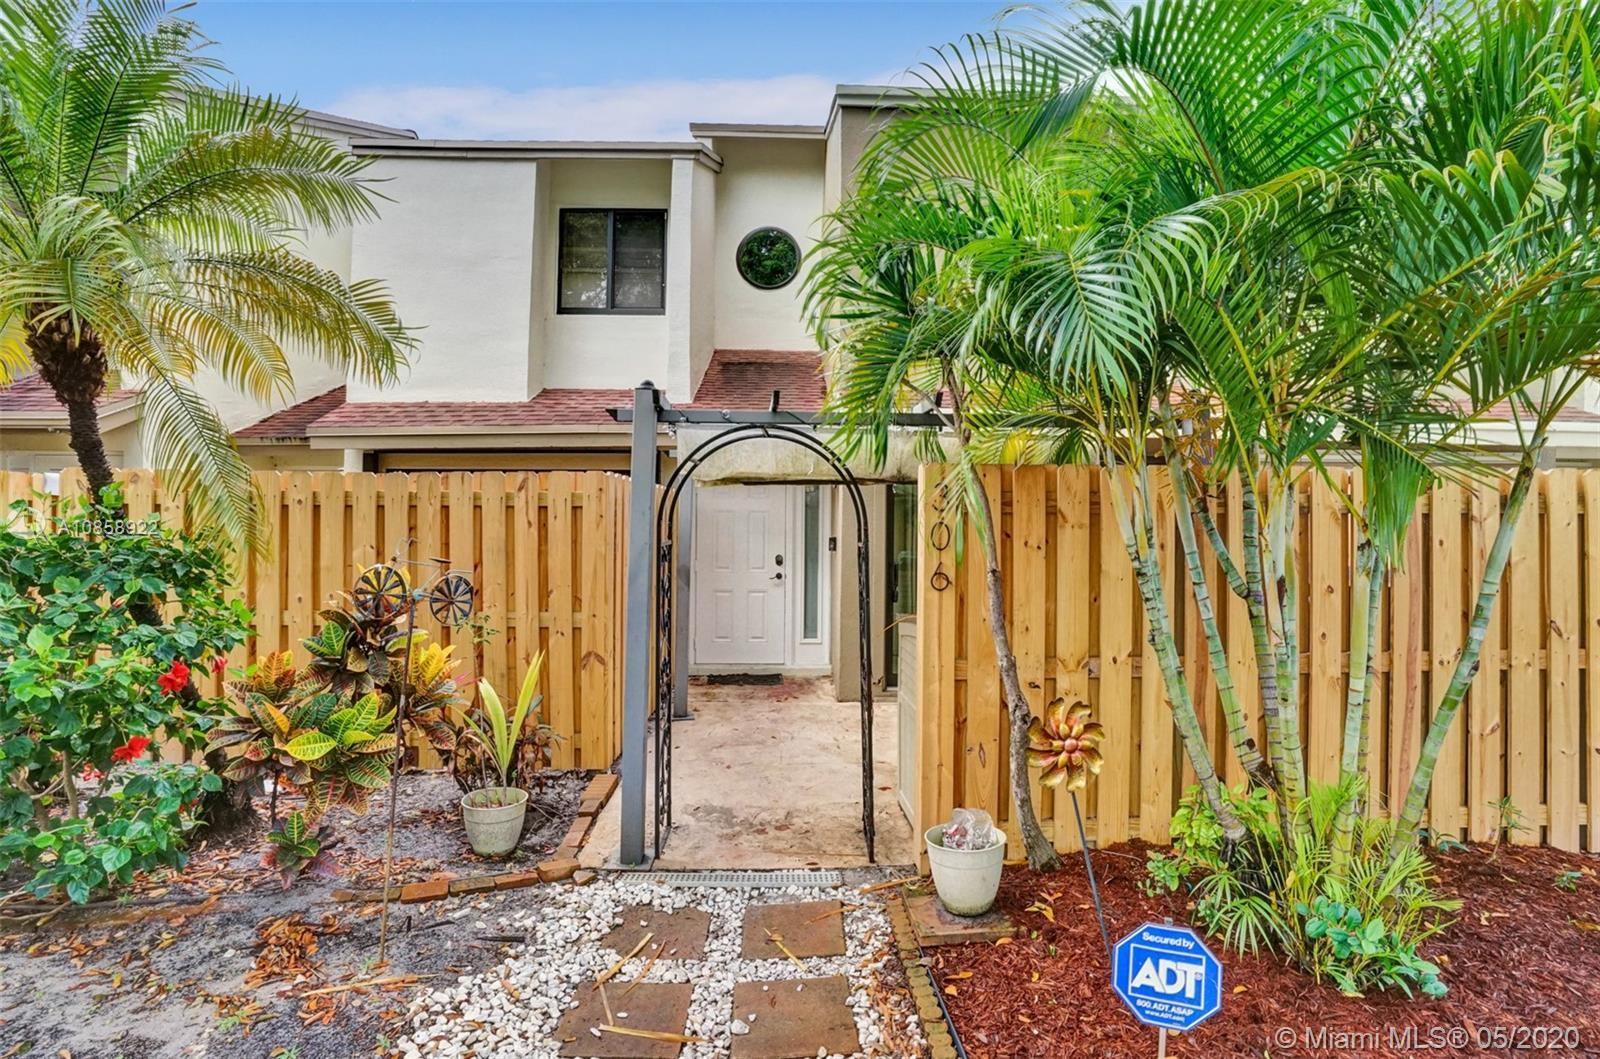 ***FHA APPROVED***ABSOLUTELY STUNNING COMPLETELY RENOVATED UNIT TOP TO BOTTOM IN THE HEART OF DOWNTO